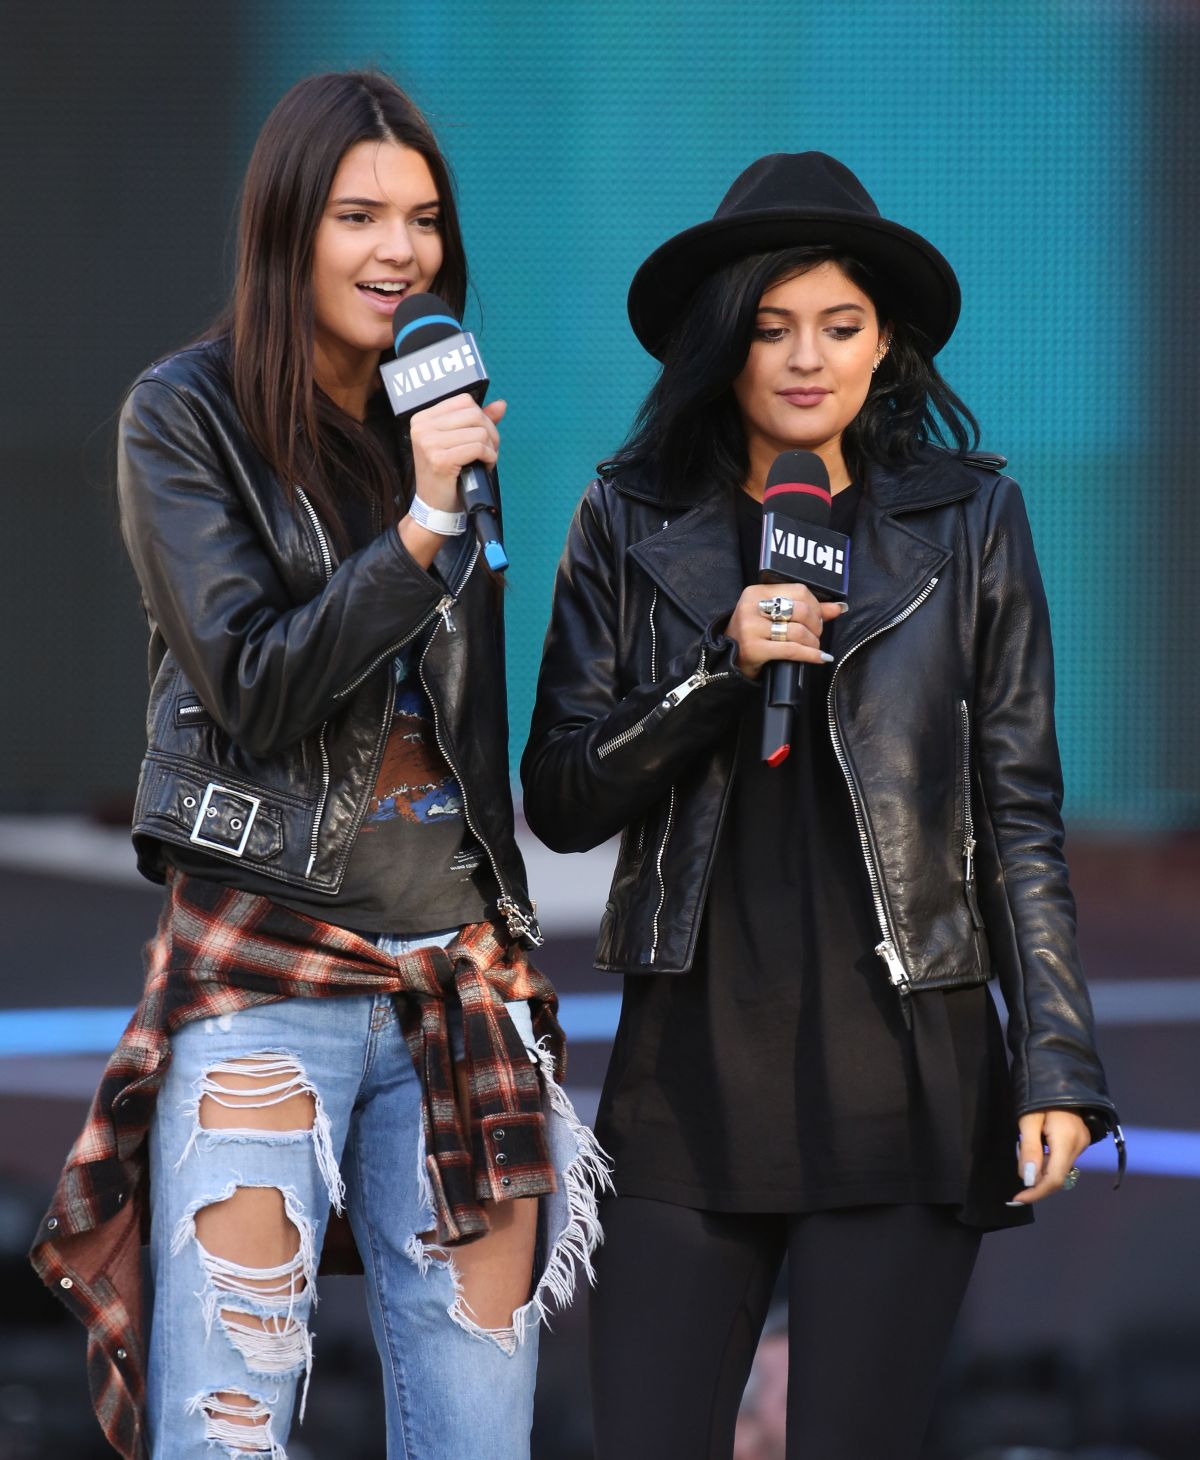 KYLIE and KENDALL JENNER at 2014 Muchmusic Video Awards Rehearsals in Toronto